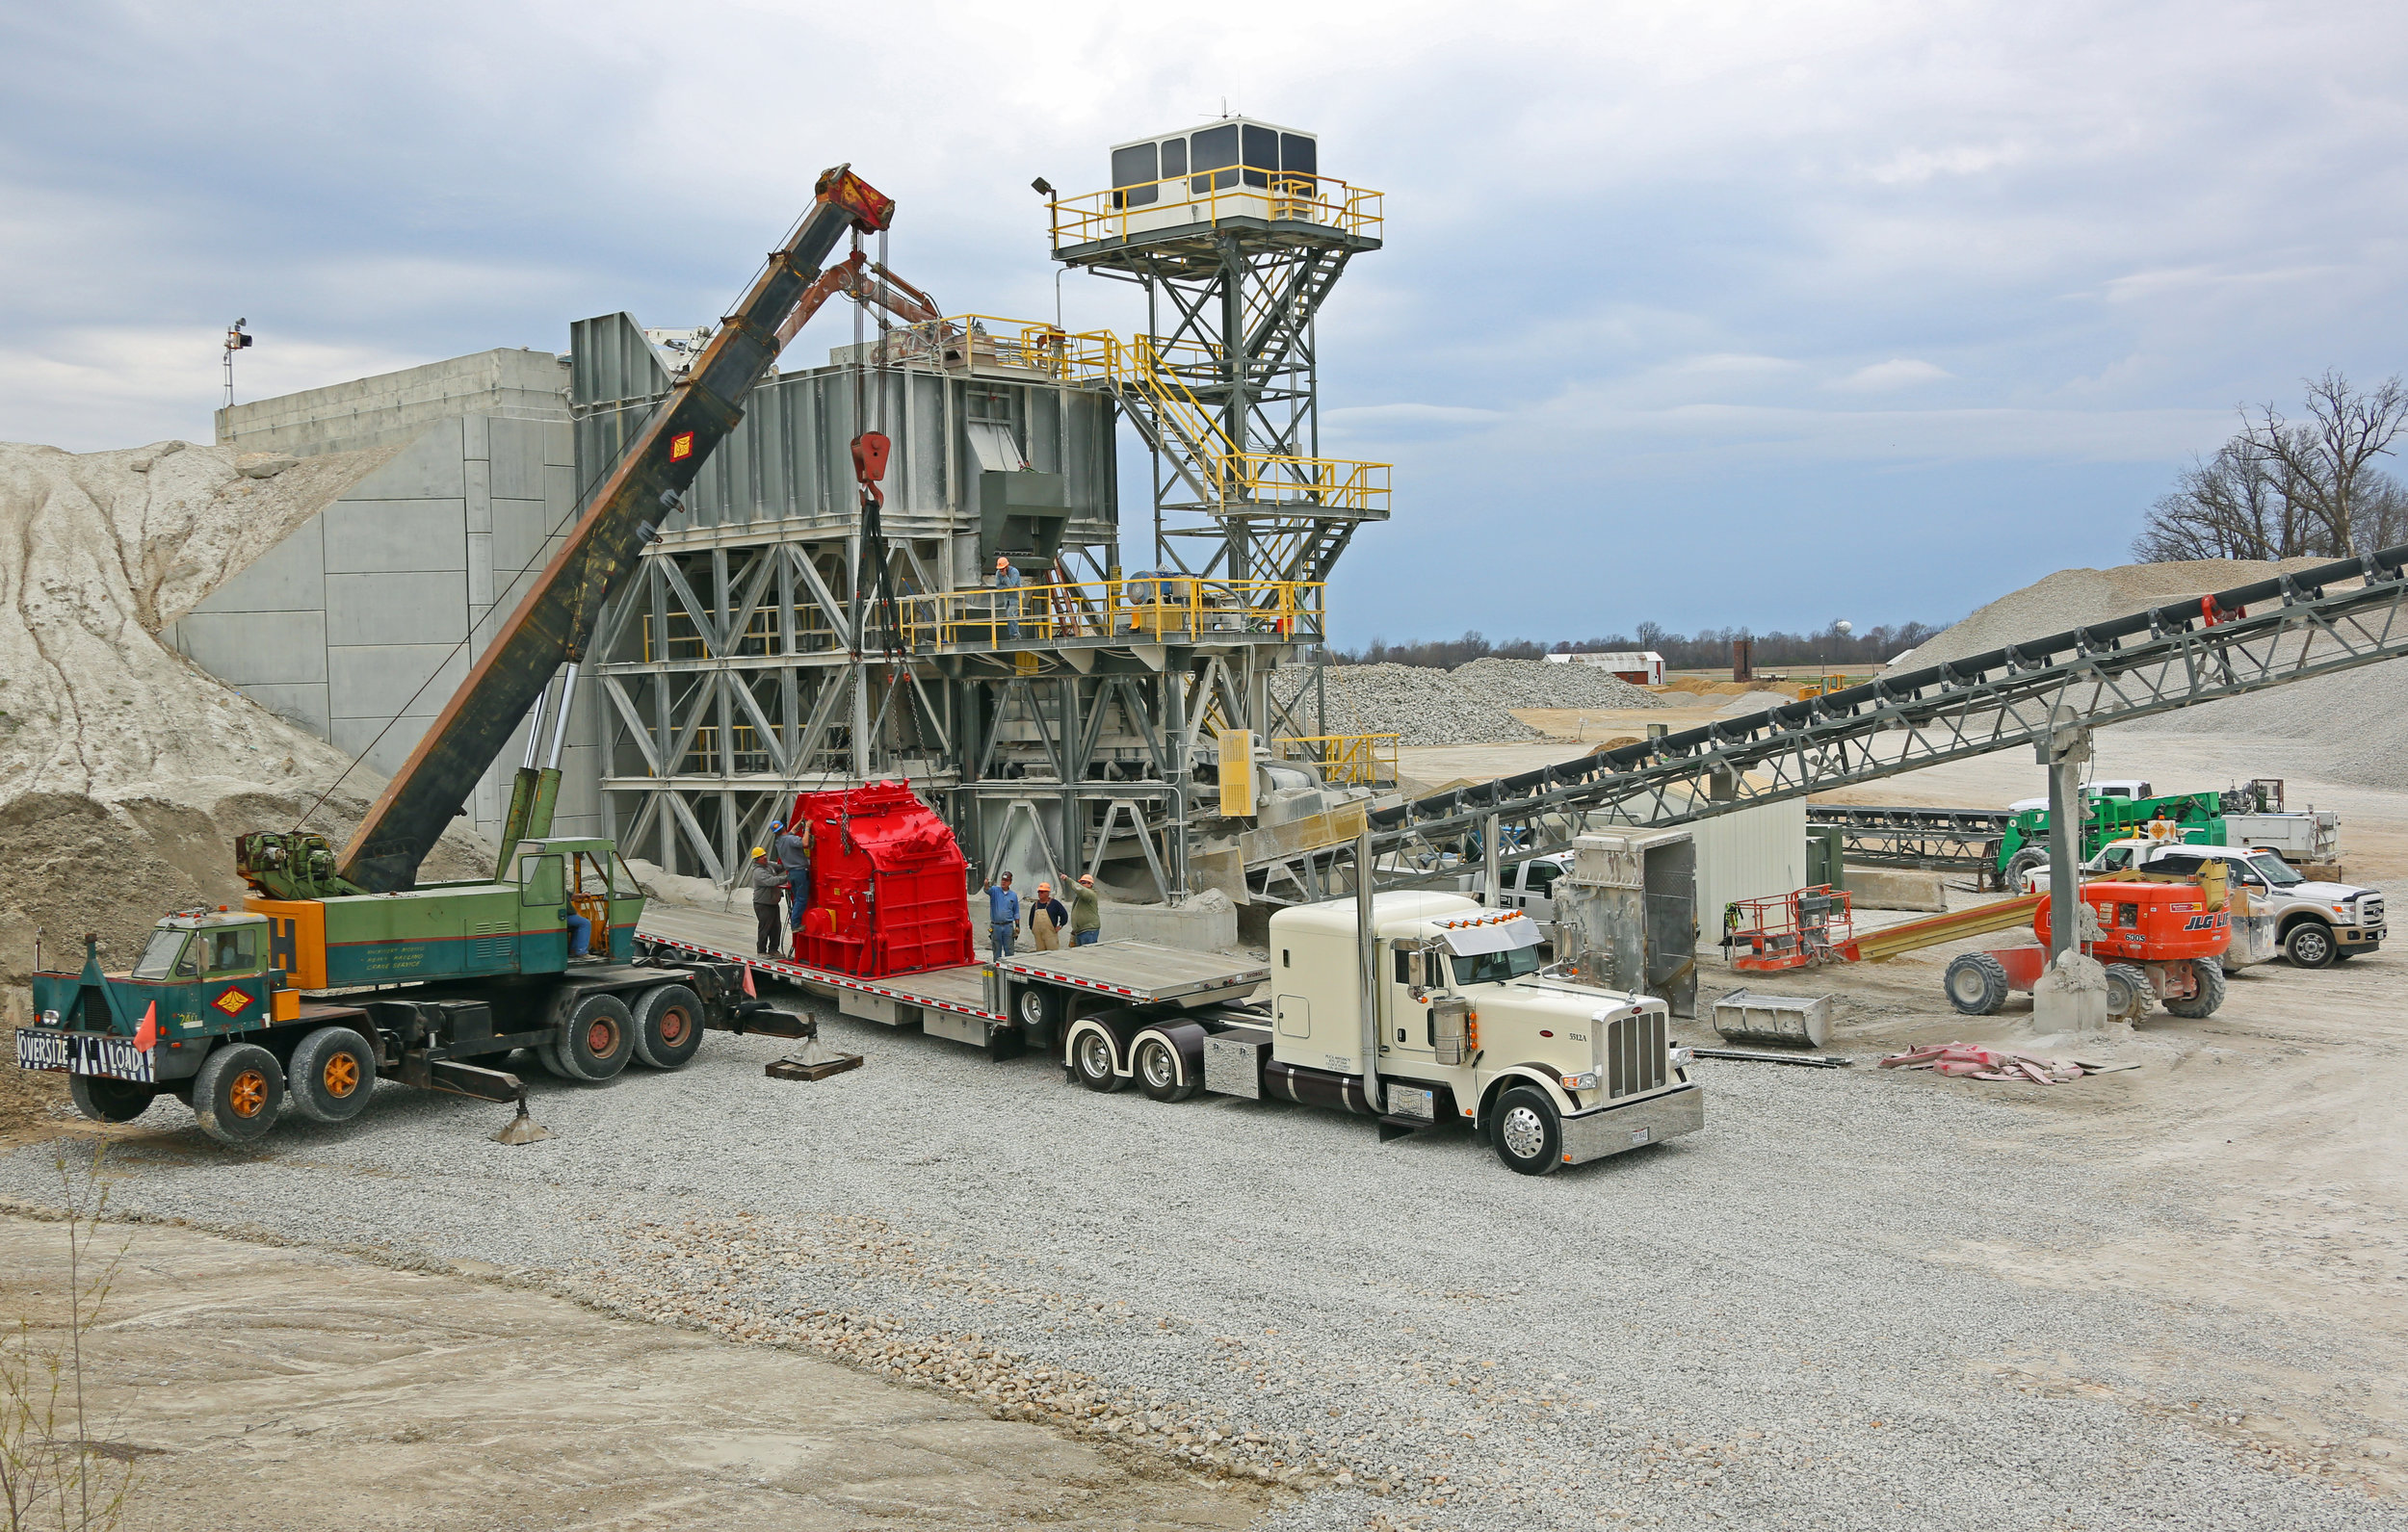 New Hazemag Impact Crusher Being Installed - March 2016